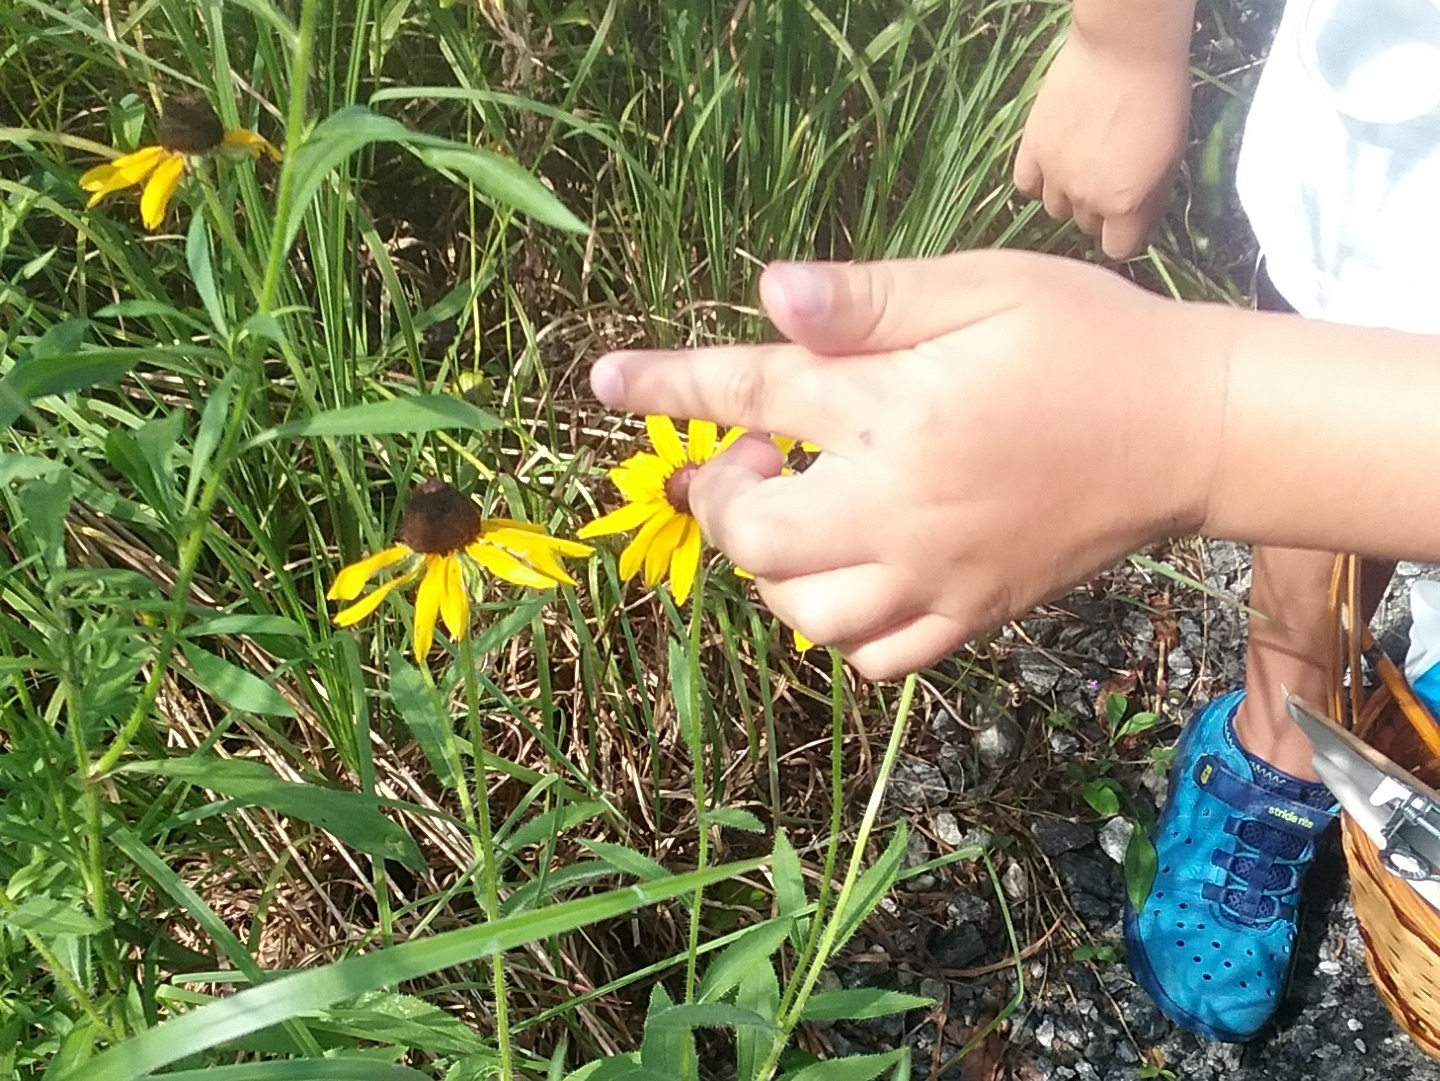 Plant Discovery  The native plants of Blue Heron are abundant in all seasons. We'll touch, smell, and observe plants in two different habitats and build an understanding of how plants grow and reproduce.